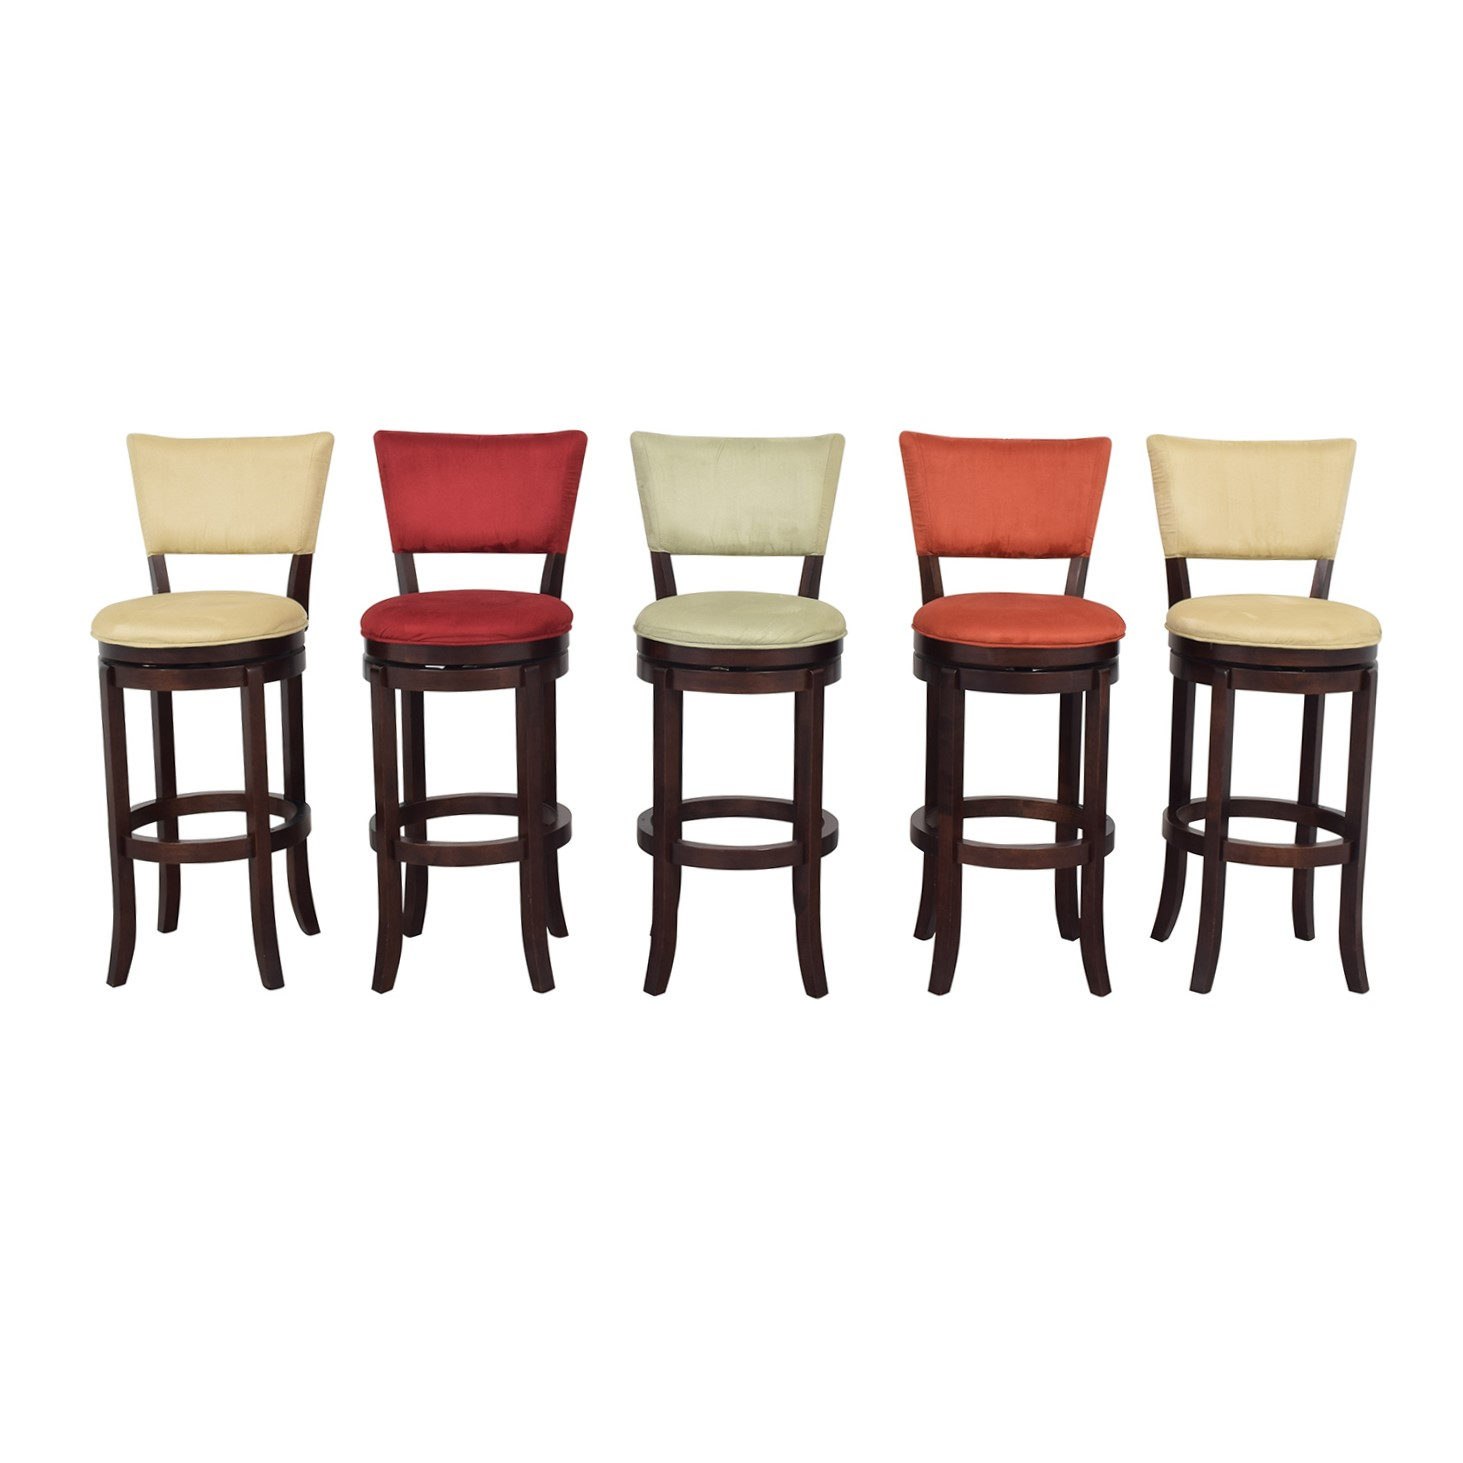 Rooms To Go Rooms To Go Keefer Bar Stools discount